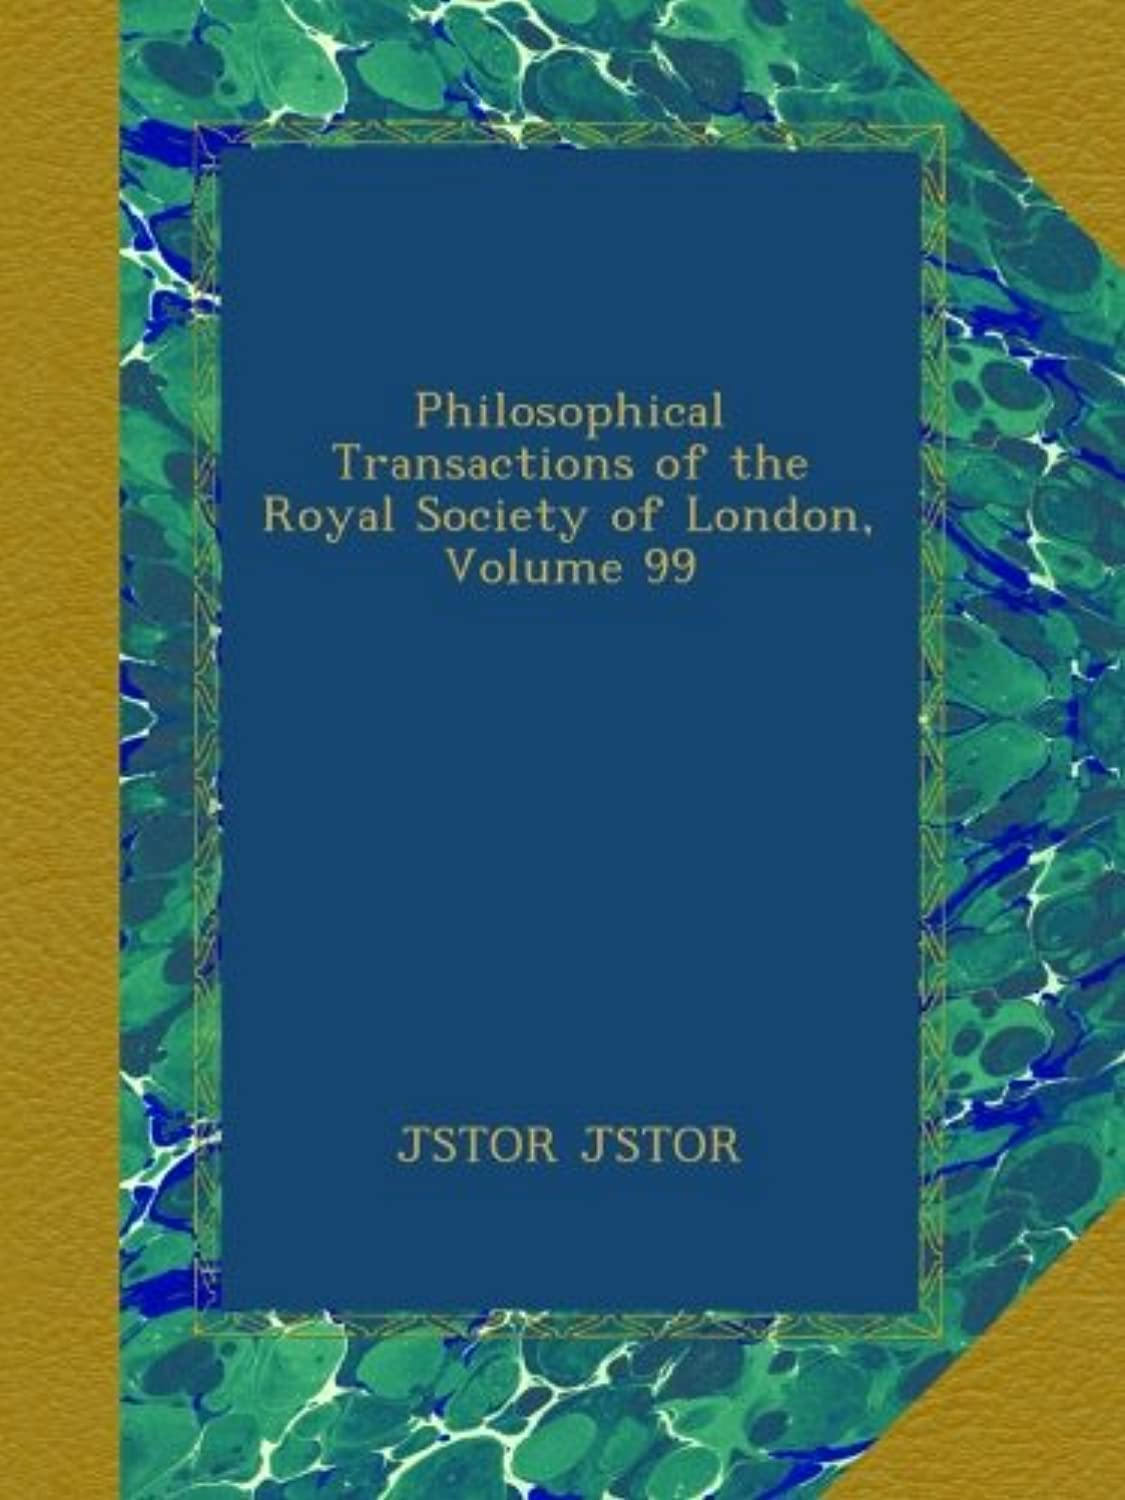 Philosophical Transactions of the Royal Society of London, Volume 99